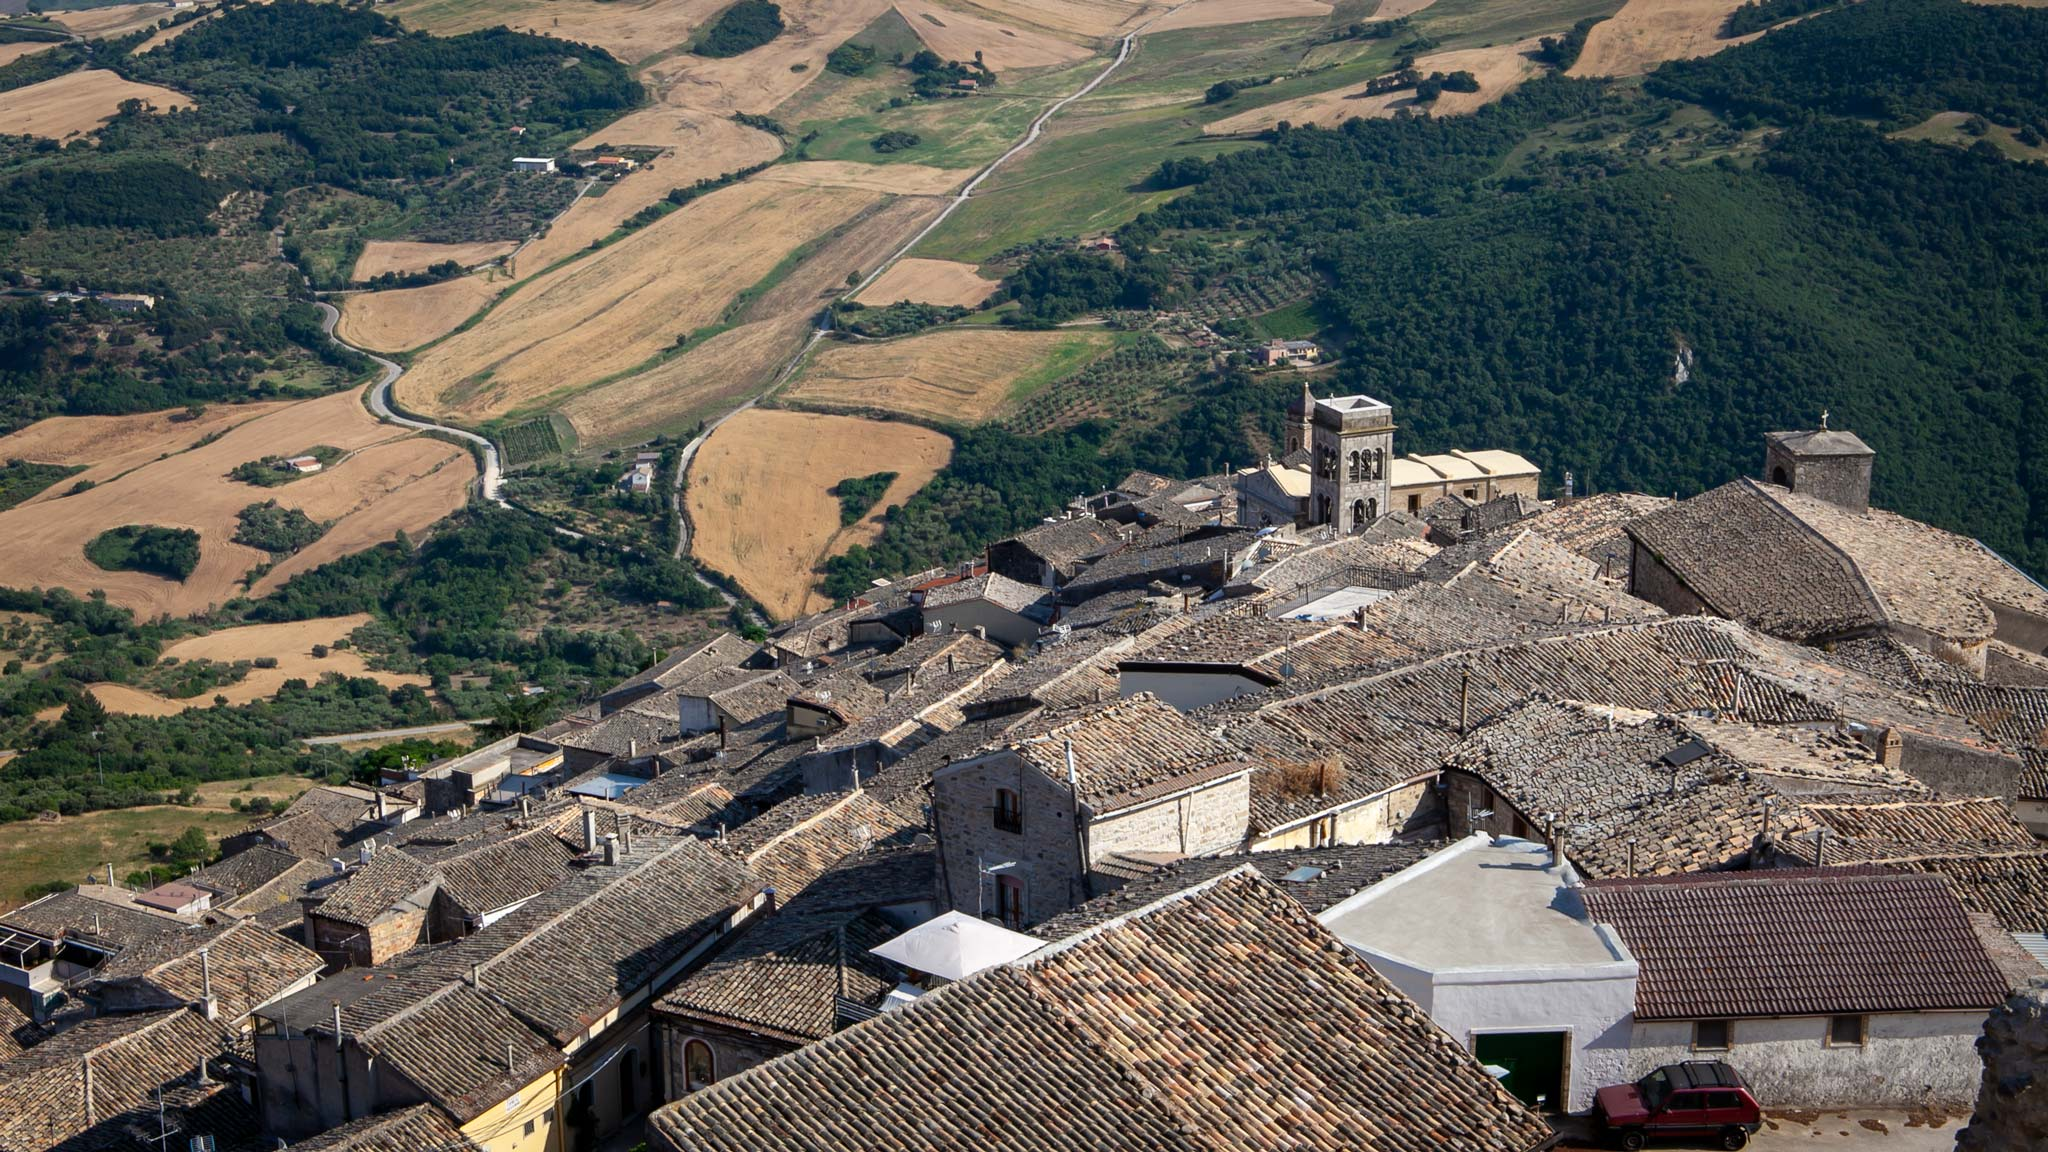 The rooftops of Sant'Agata di Puglia town with green hills in the background